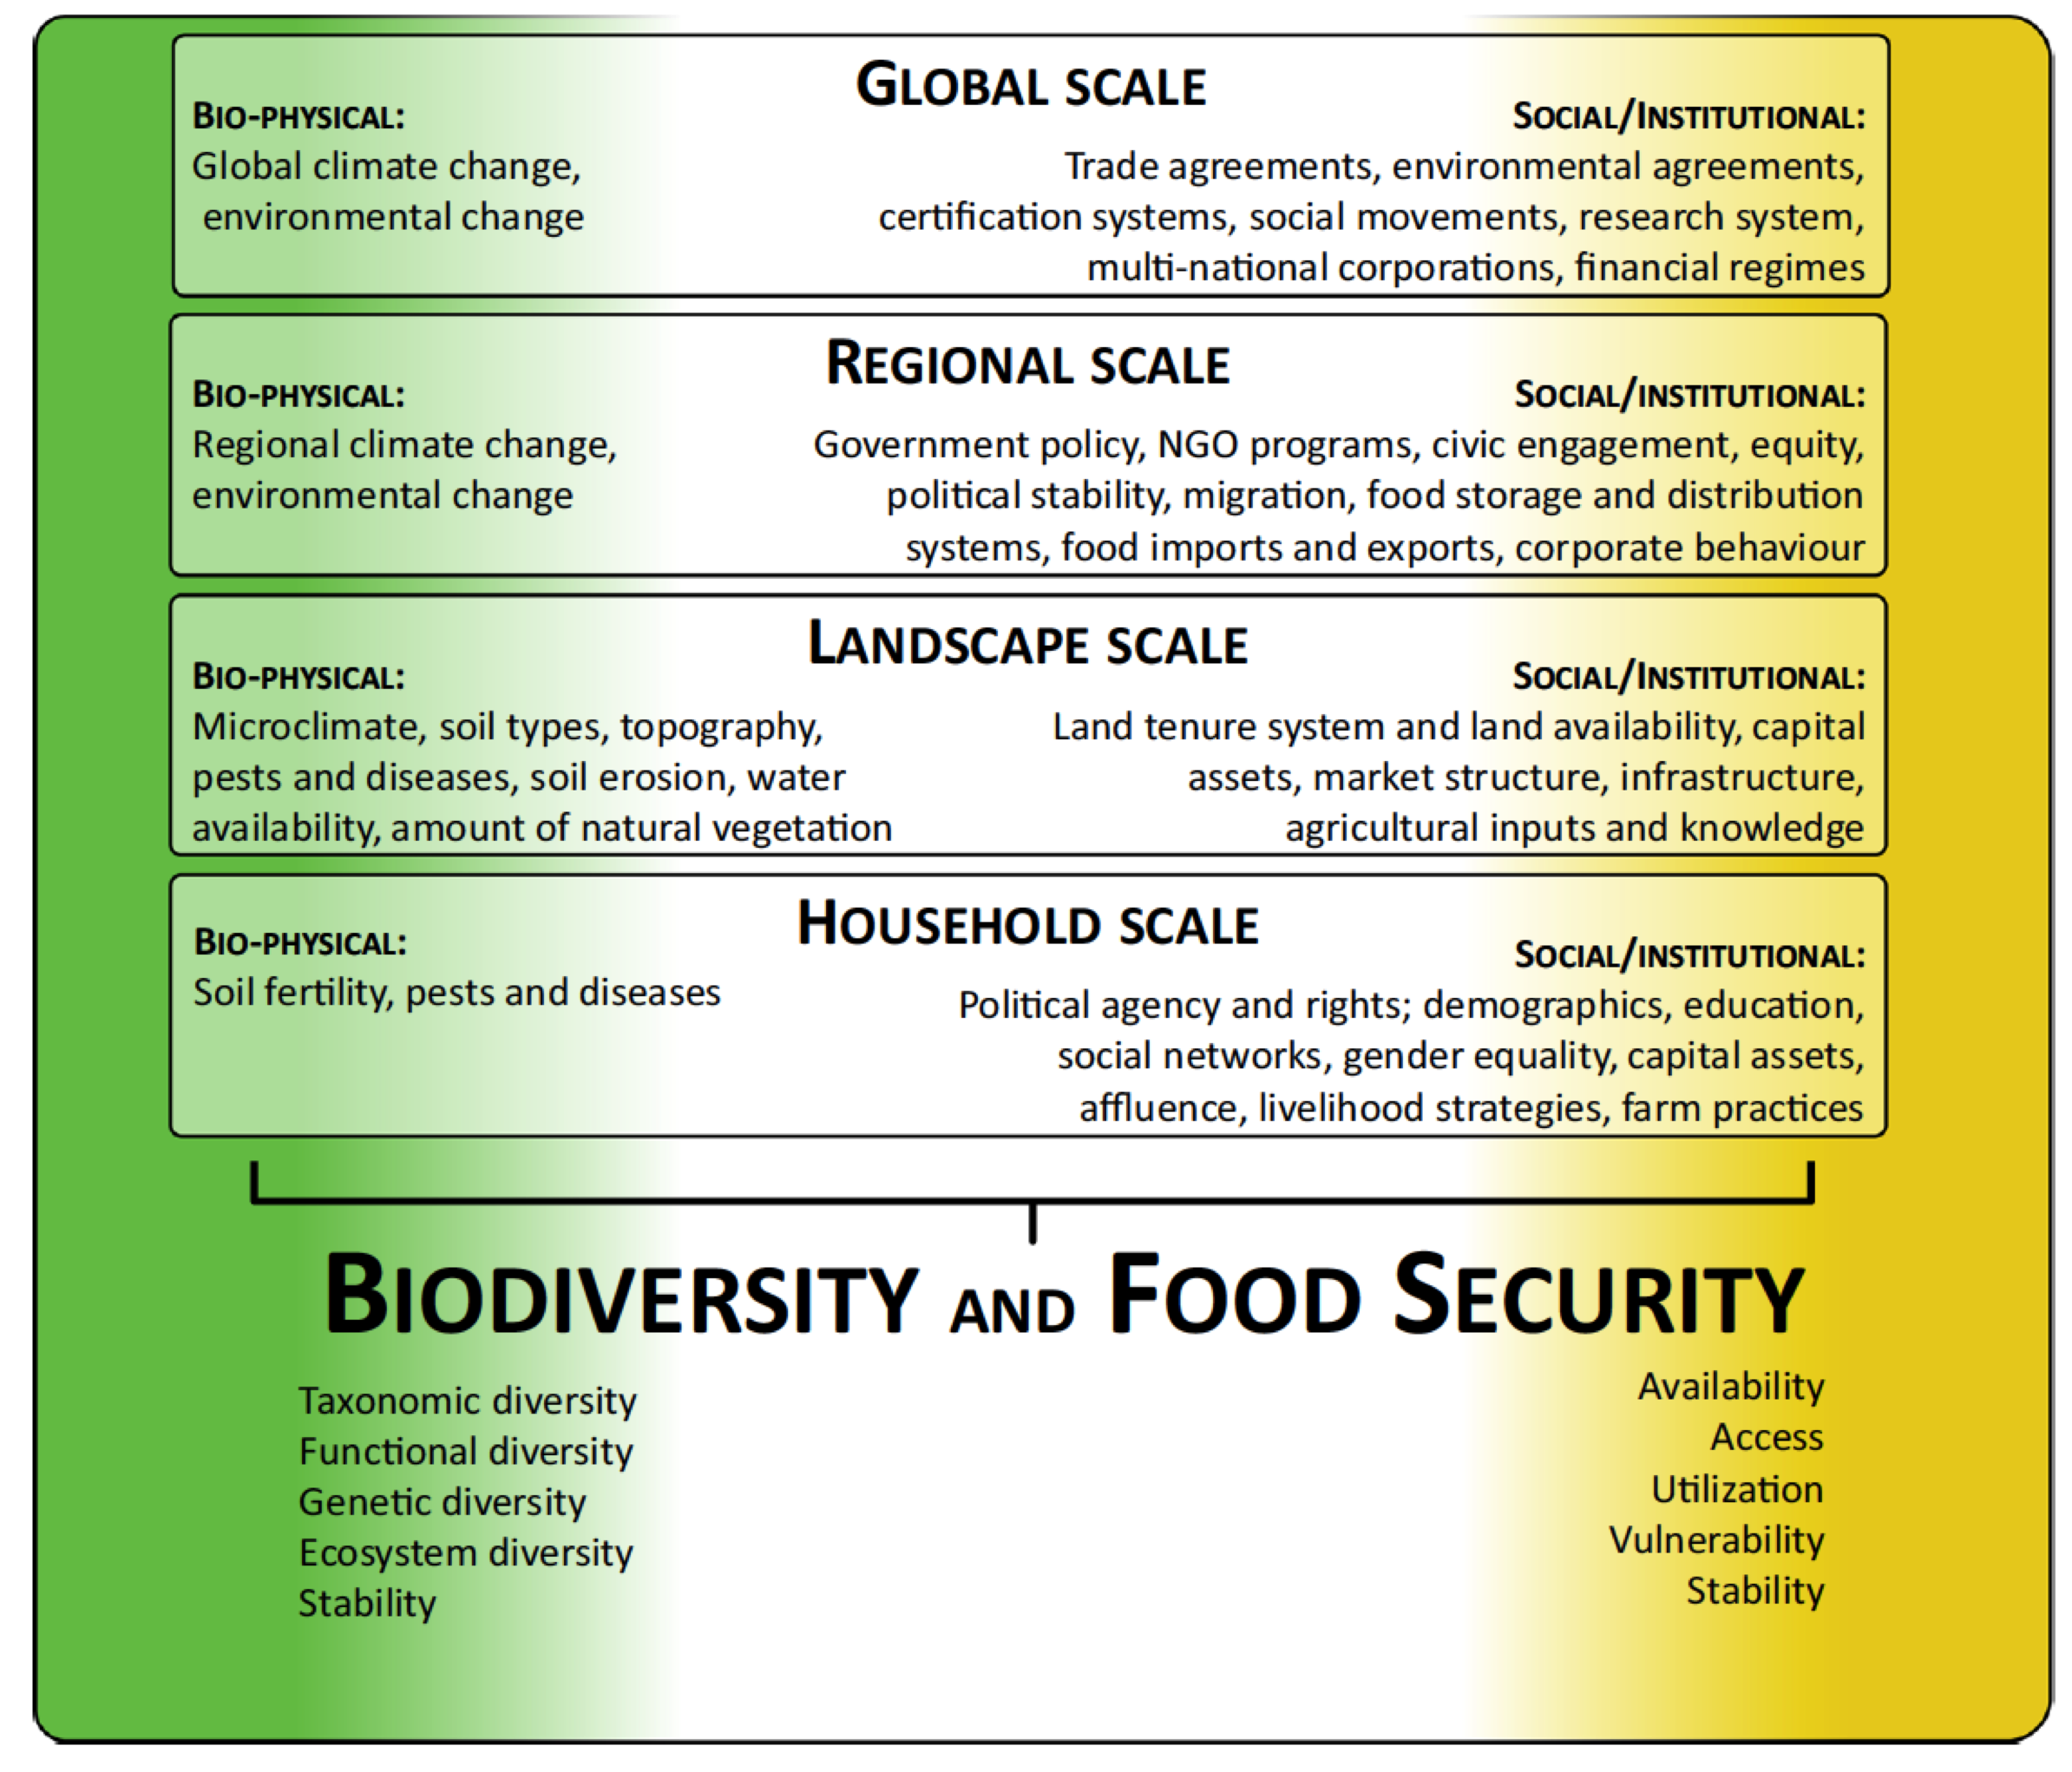 essay on food security in essay on native american culture  a social ecological perspective on food security and biodiversity a social ecological perspective on food security